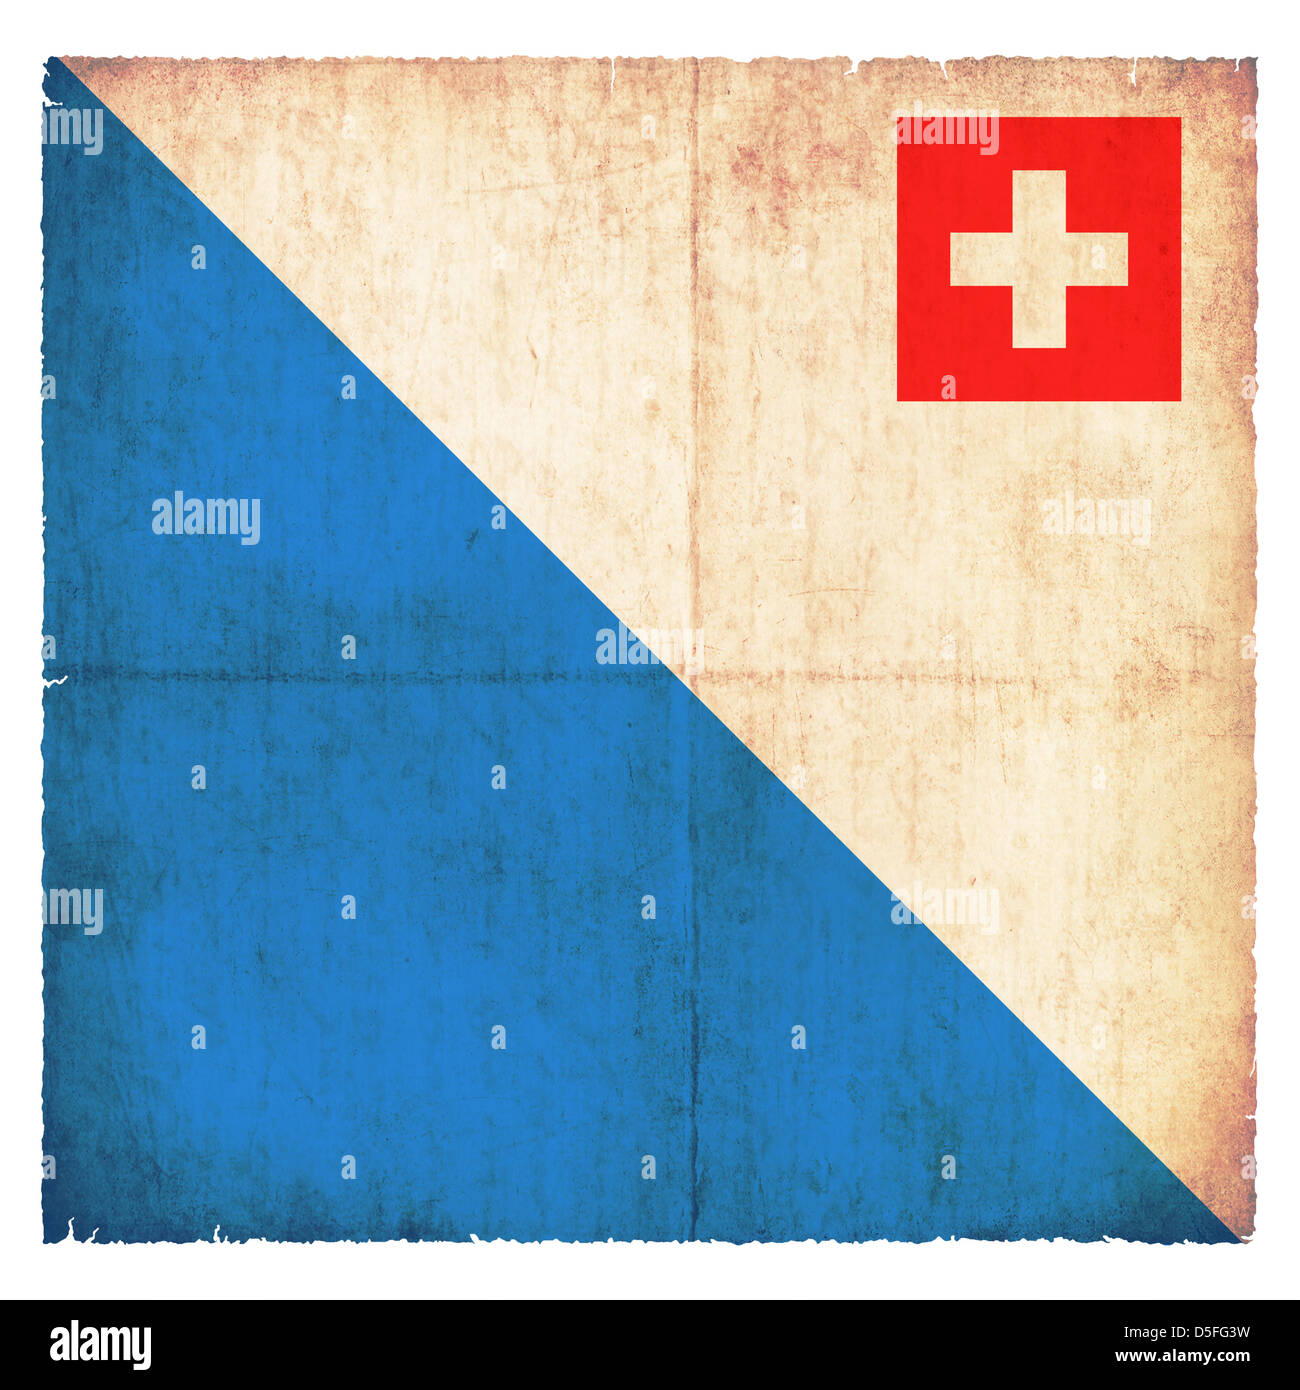 Flag of the swiss canton Zurich created in grunge style - Stock Image